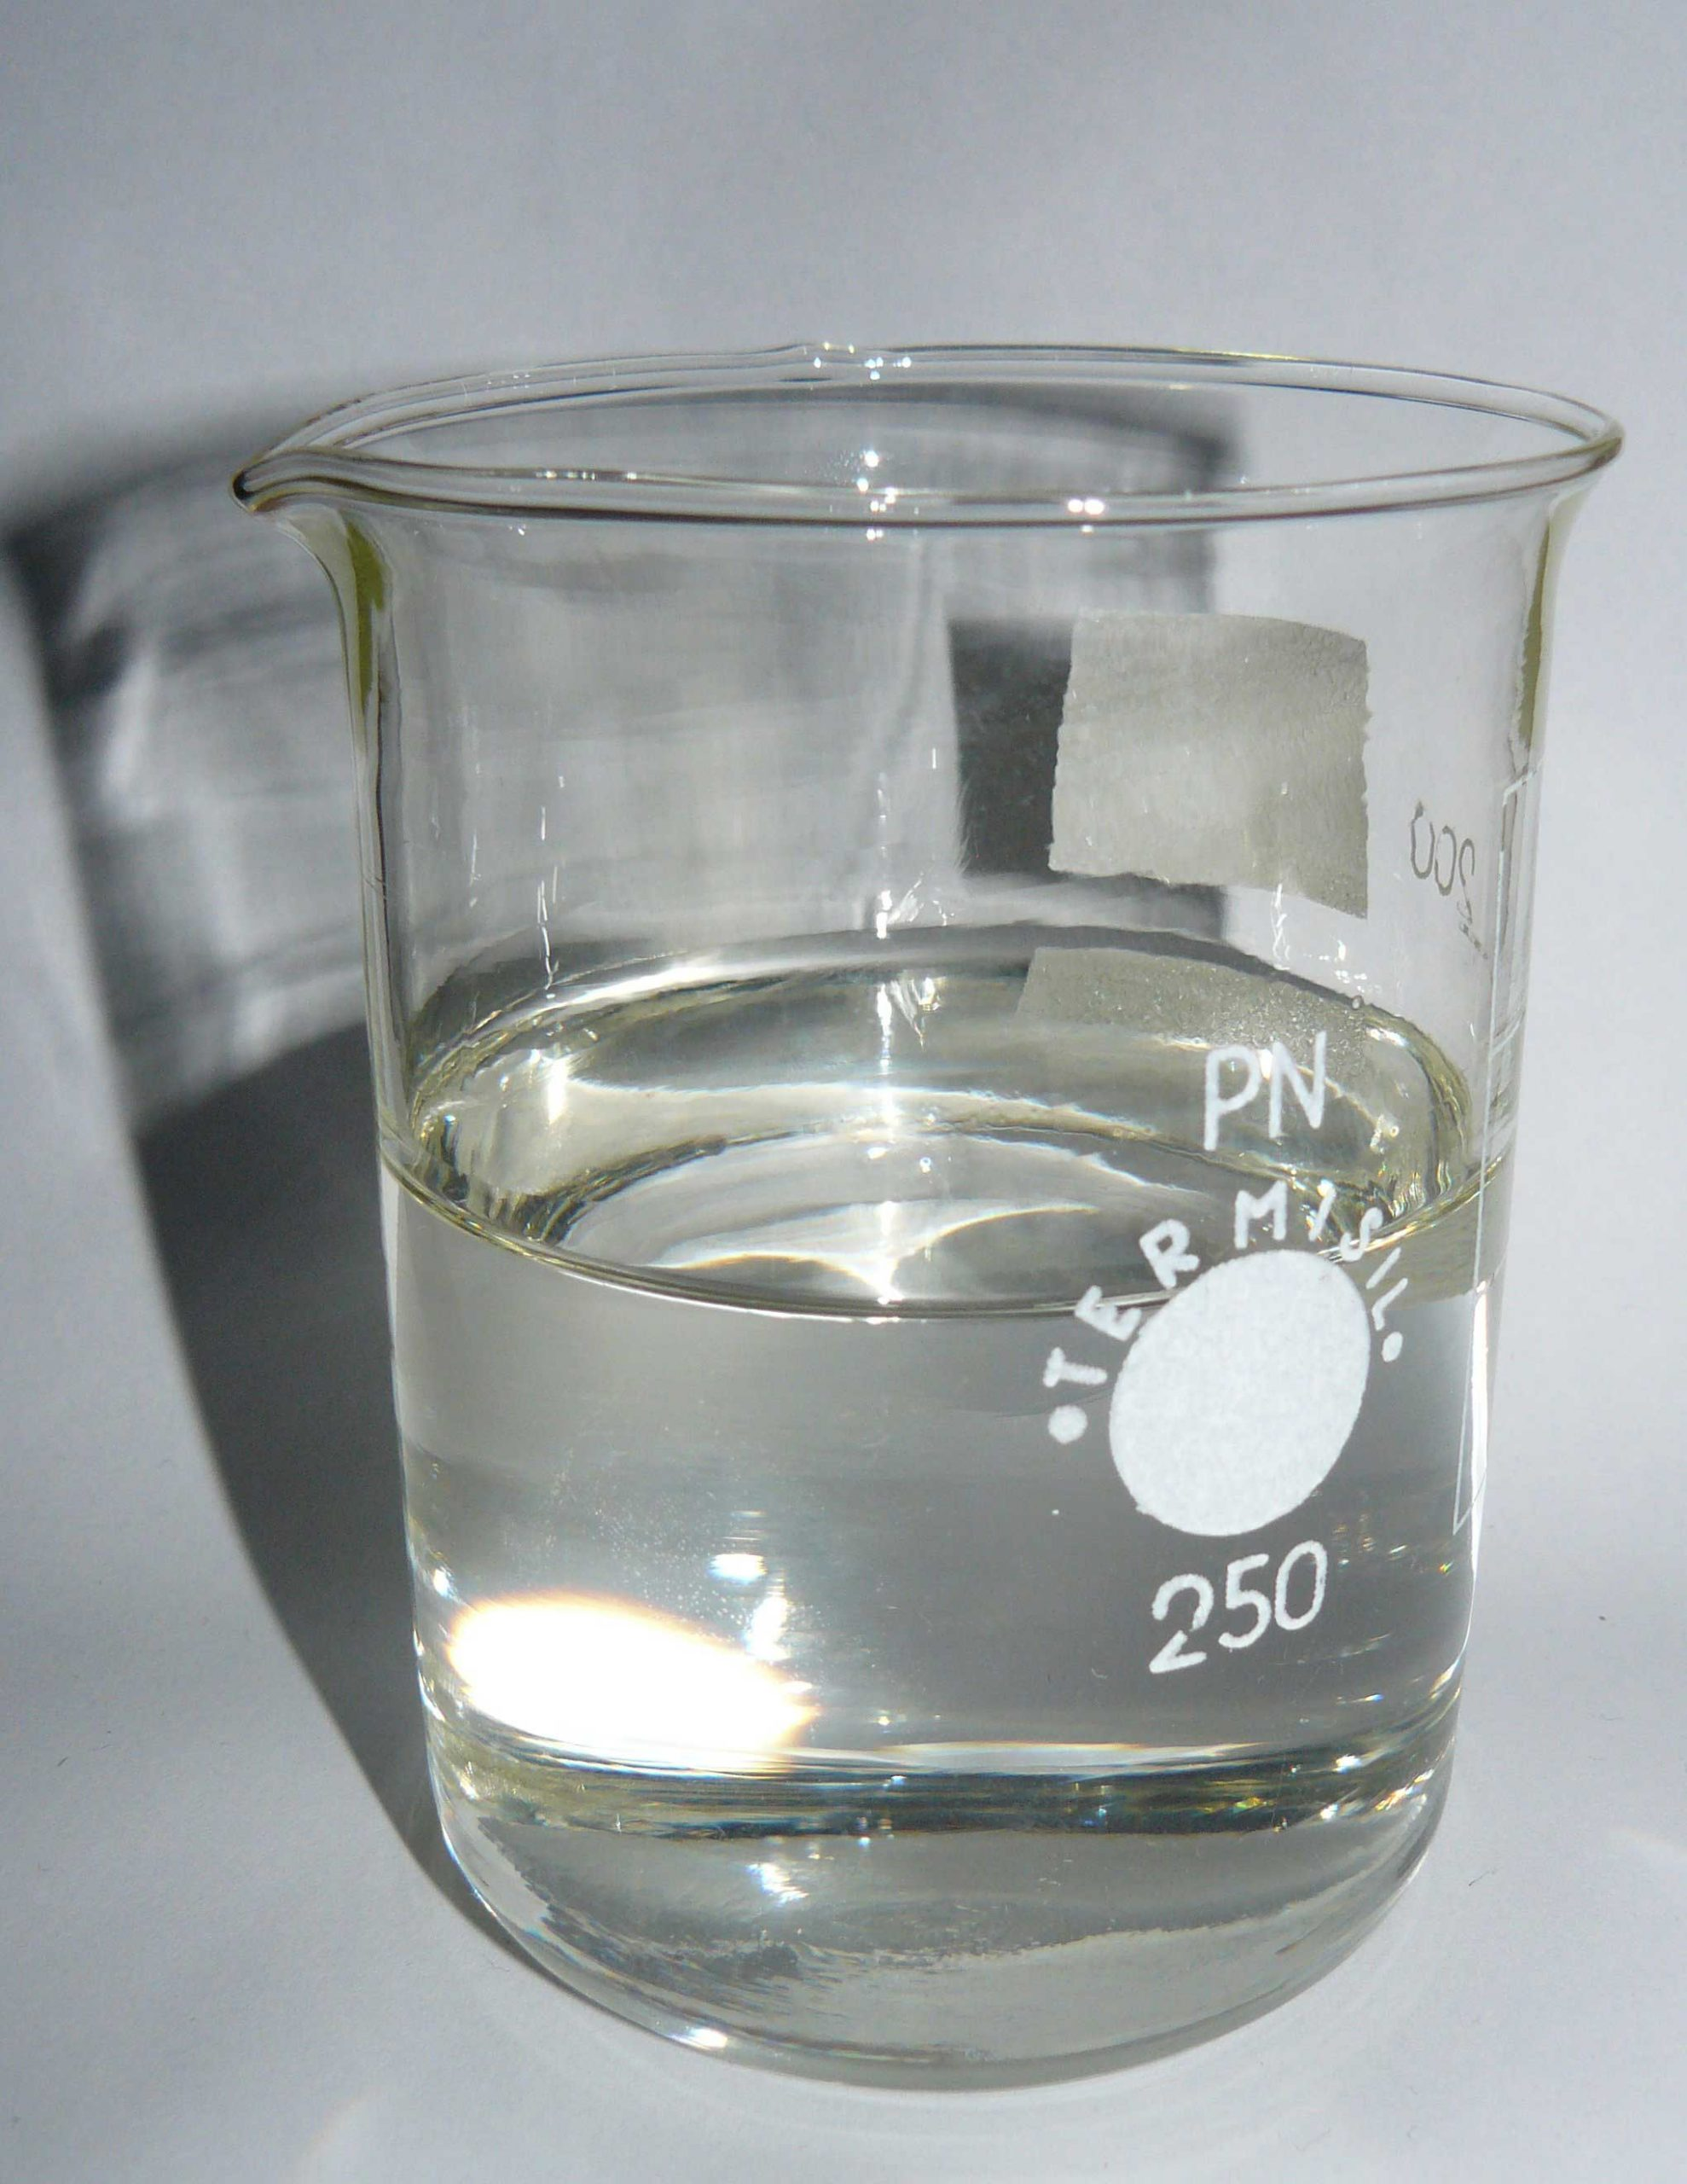 Paraffin in liquid state in beaker